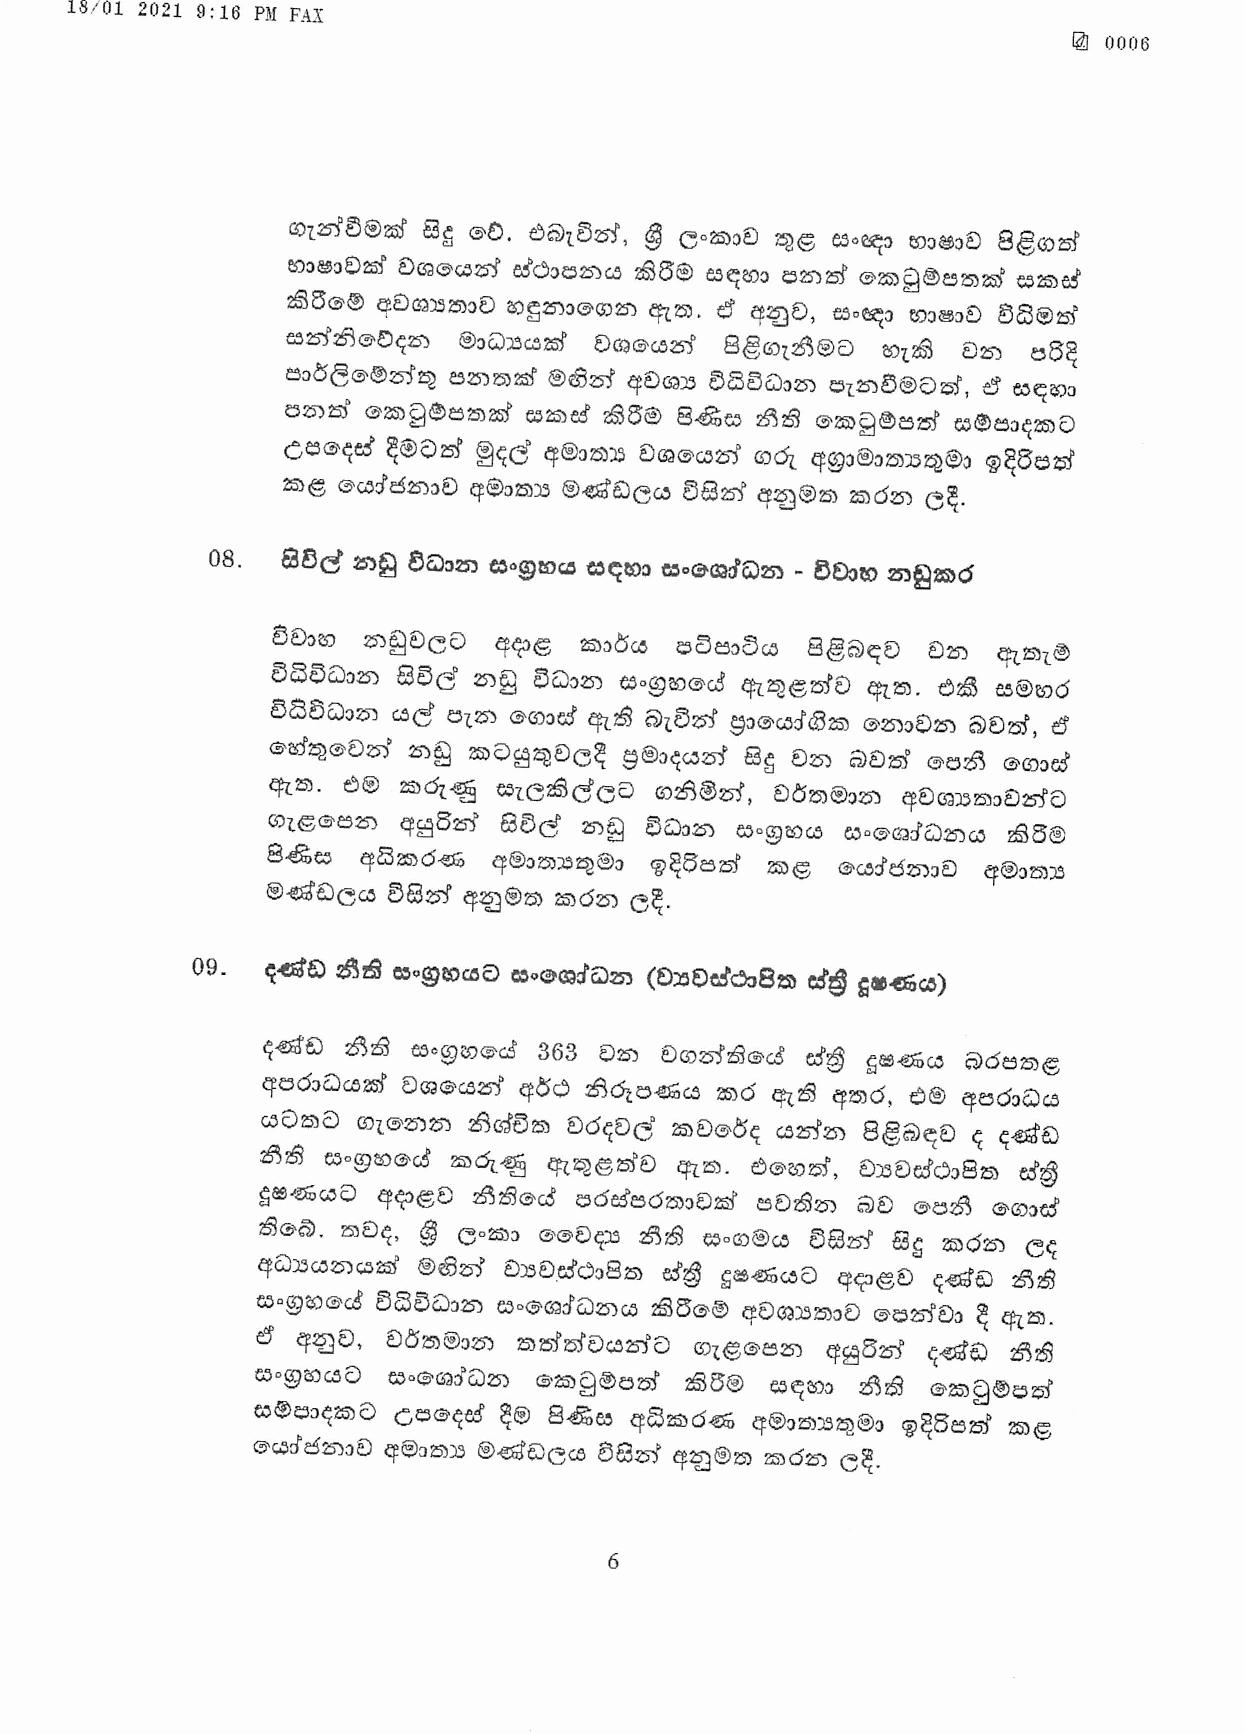 Cabinet Decision on 18.01.2021 page 006